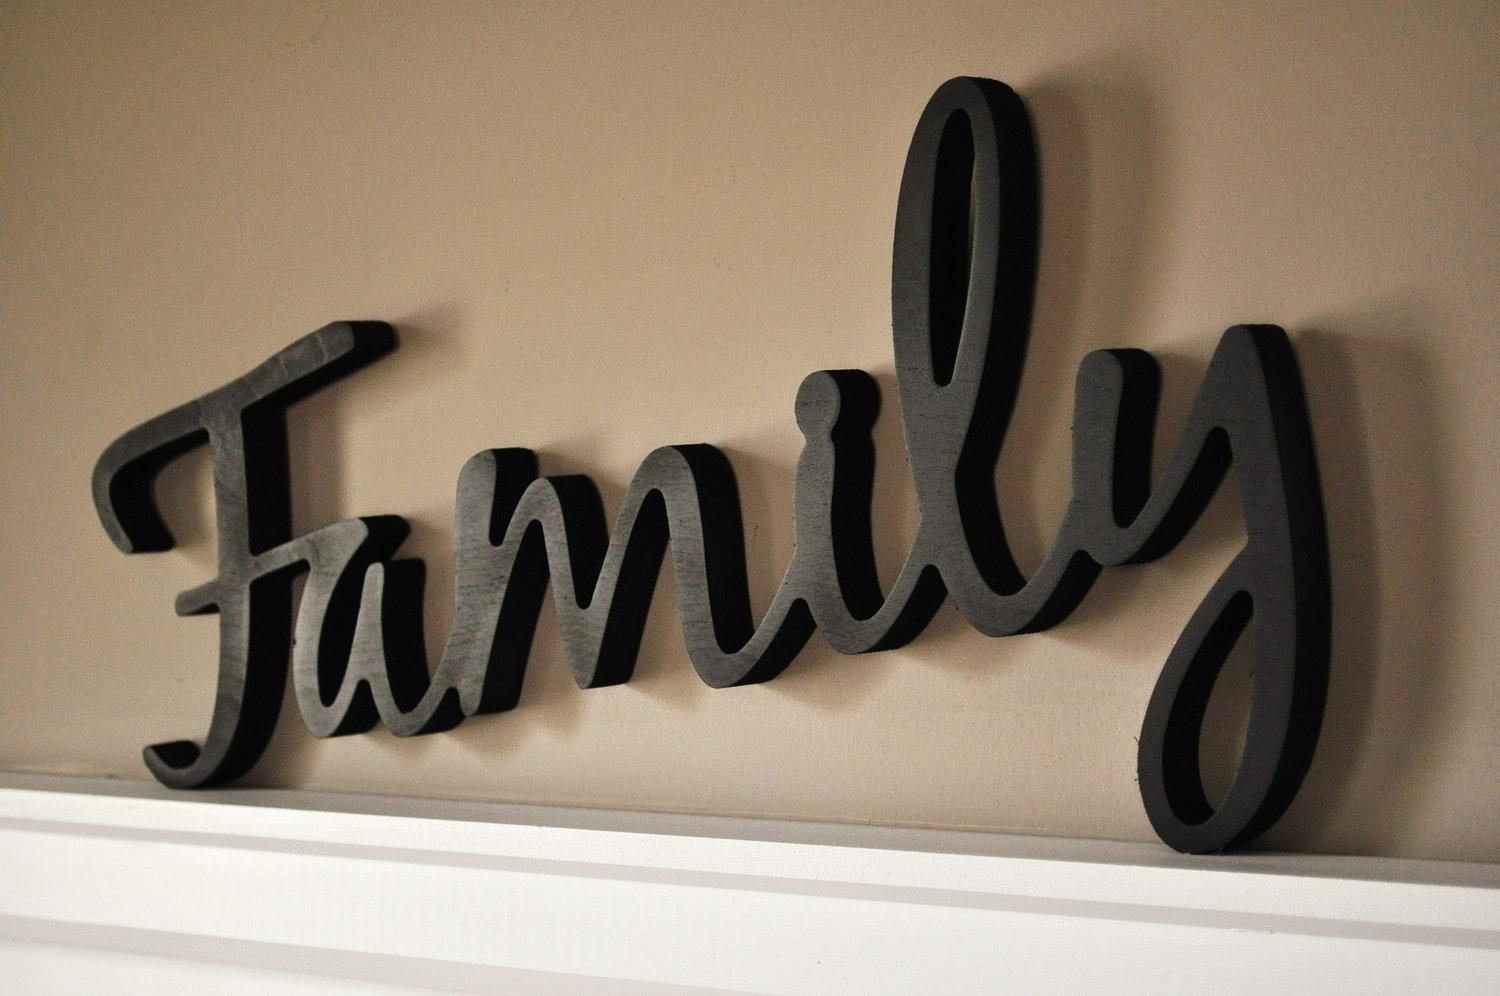 Wall Art Wooden Words | Wallartideas In Wooden Words Wall Art (Image 13 of 20)